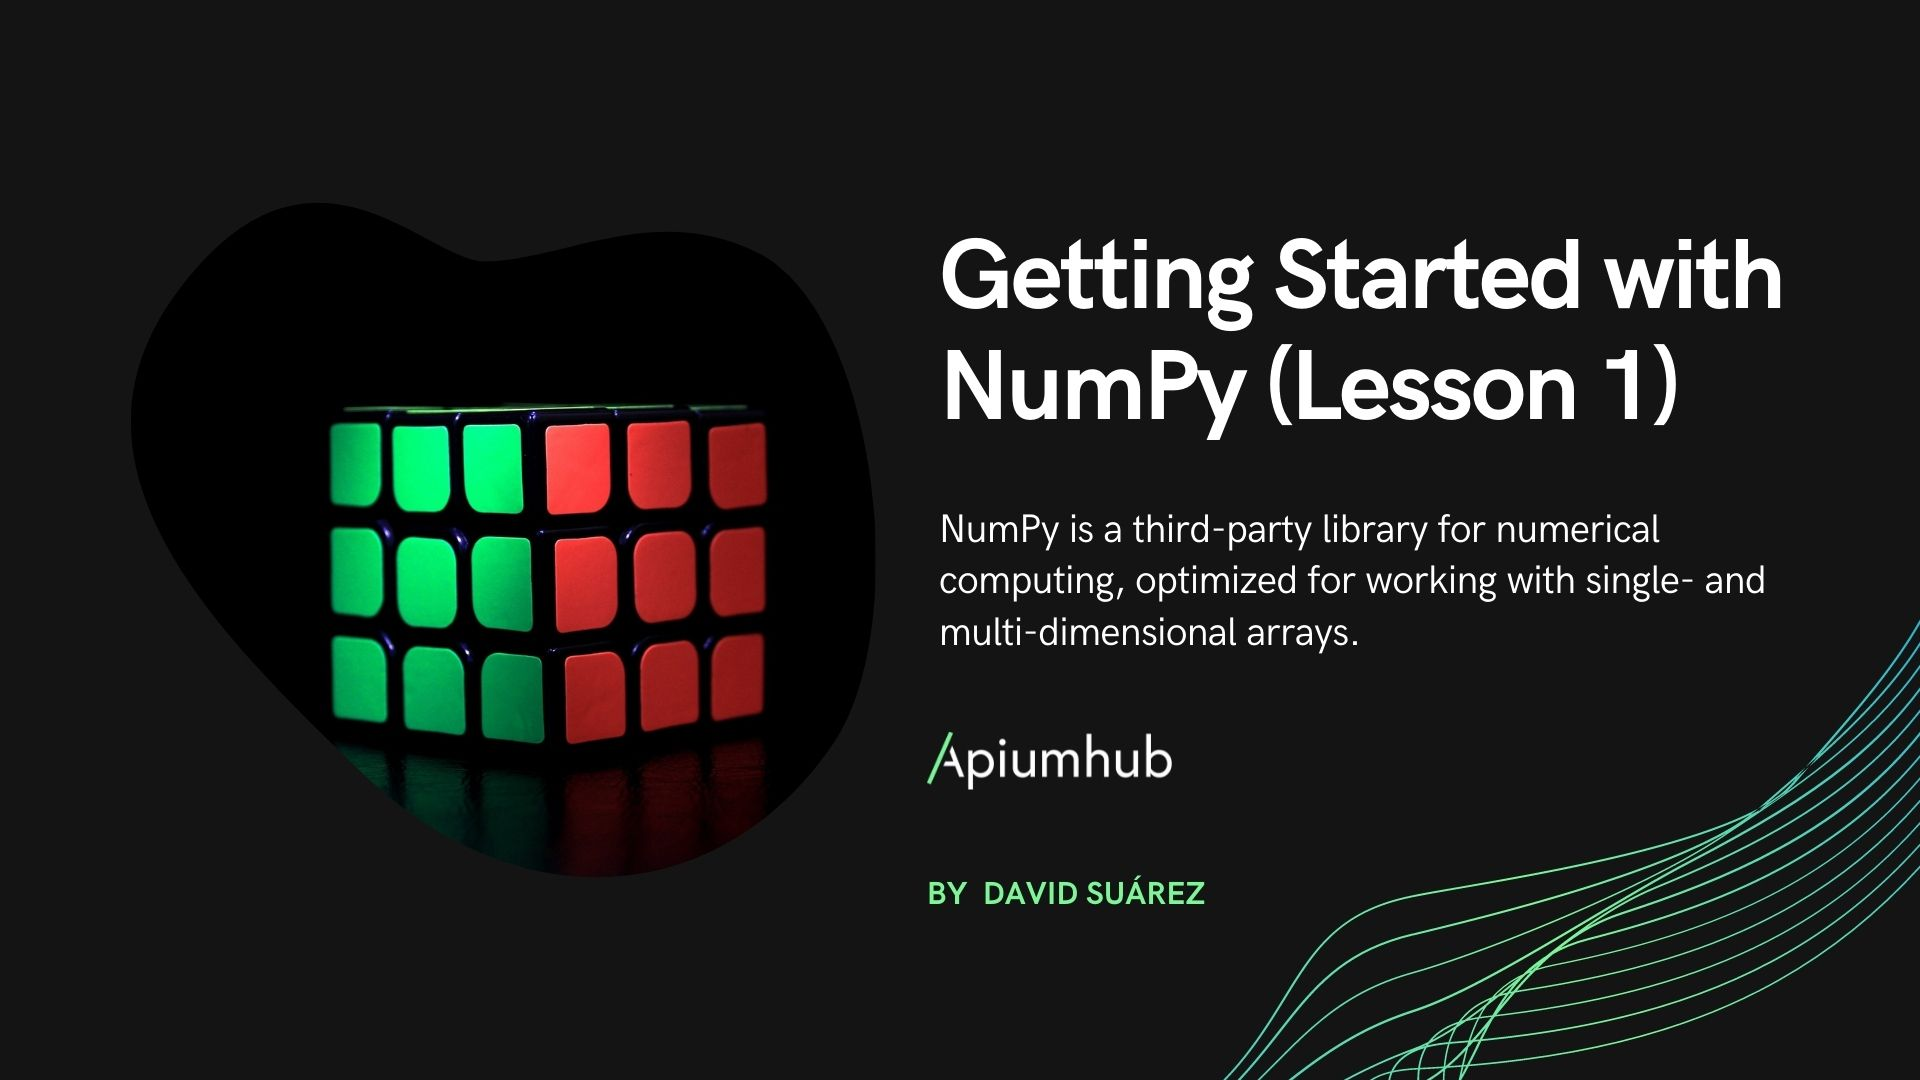 Getting Started with Numpy - Lesson 1